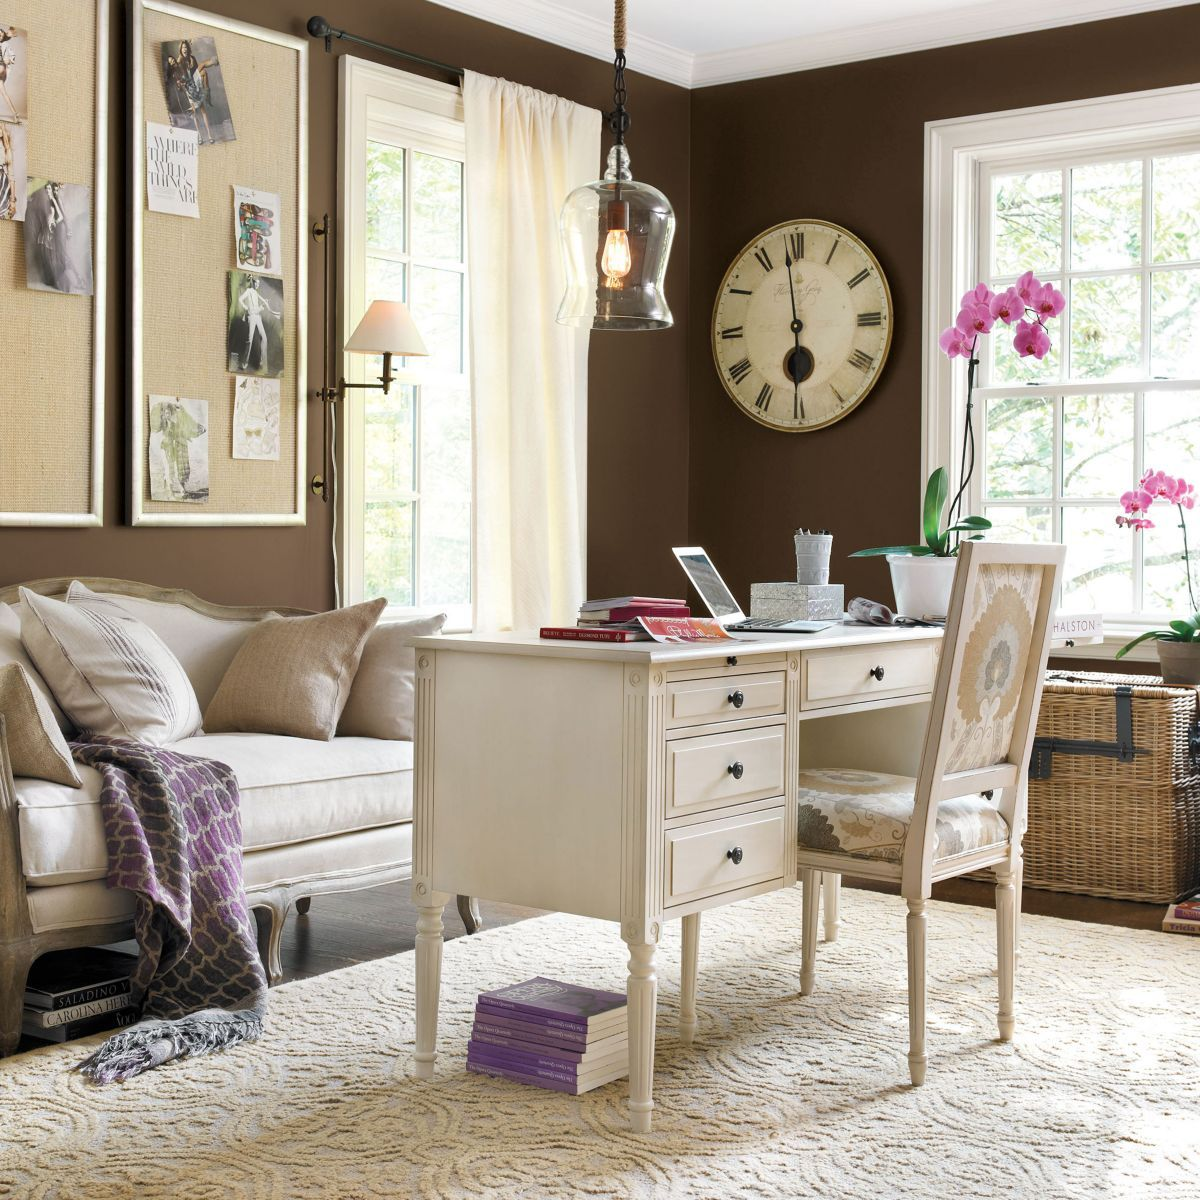 Home Office Furniture | Home Office Decor | Ballard Designs Nice Look